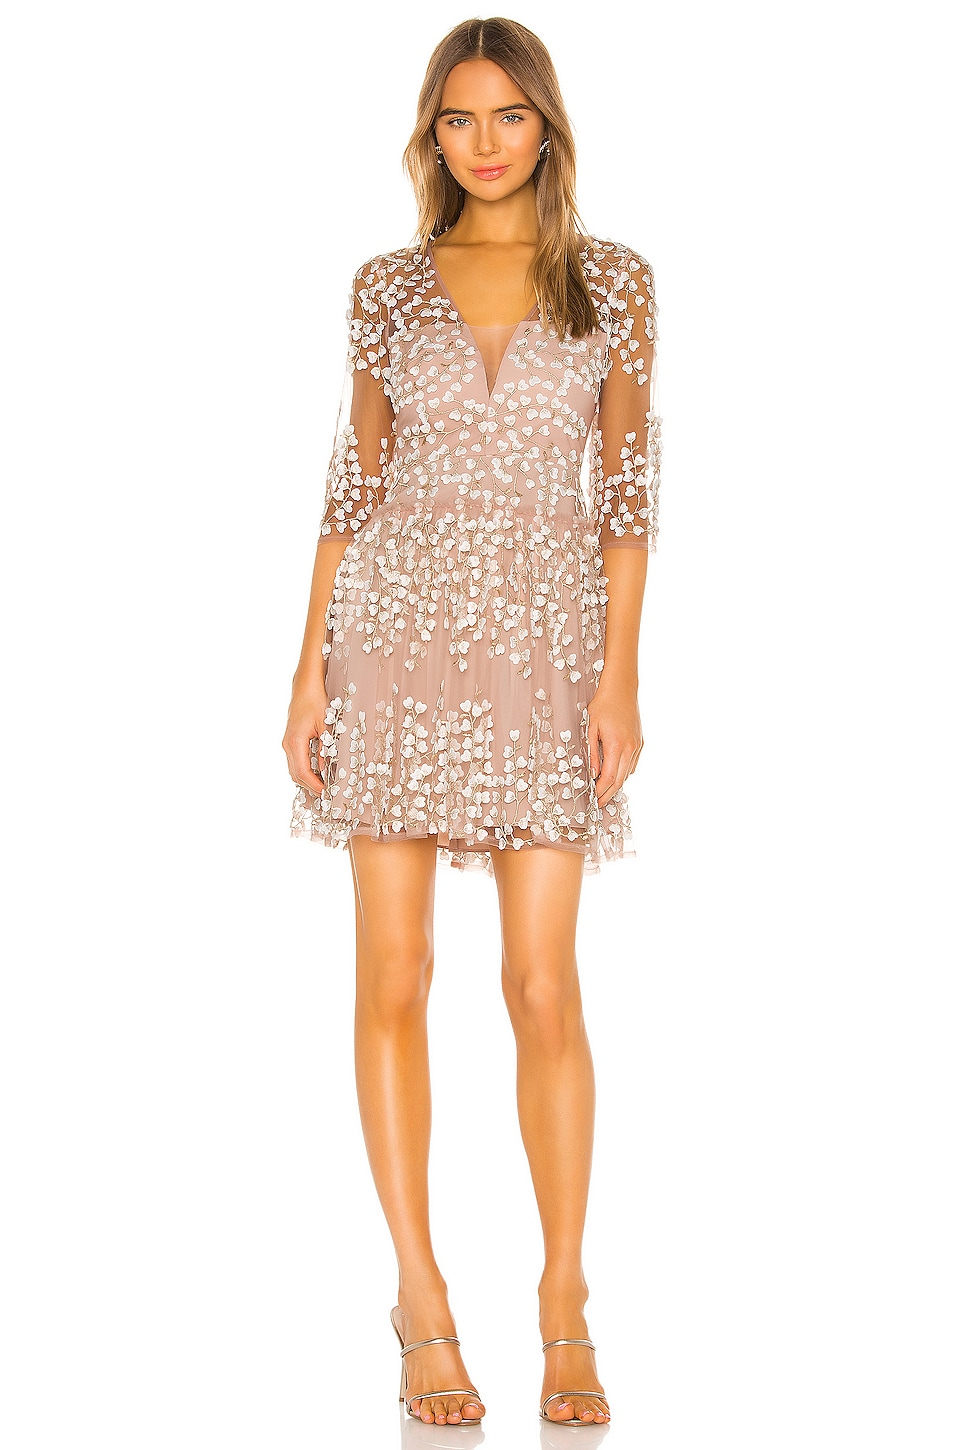 BCBGMAXAZRIA Embroidered Cocktail Dress in Bare Pink